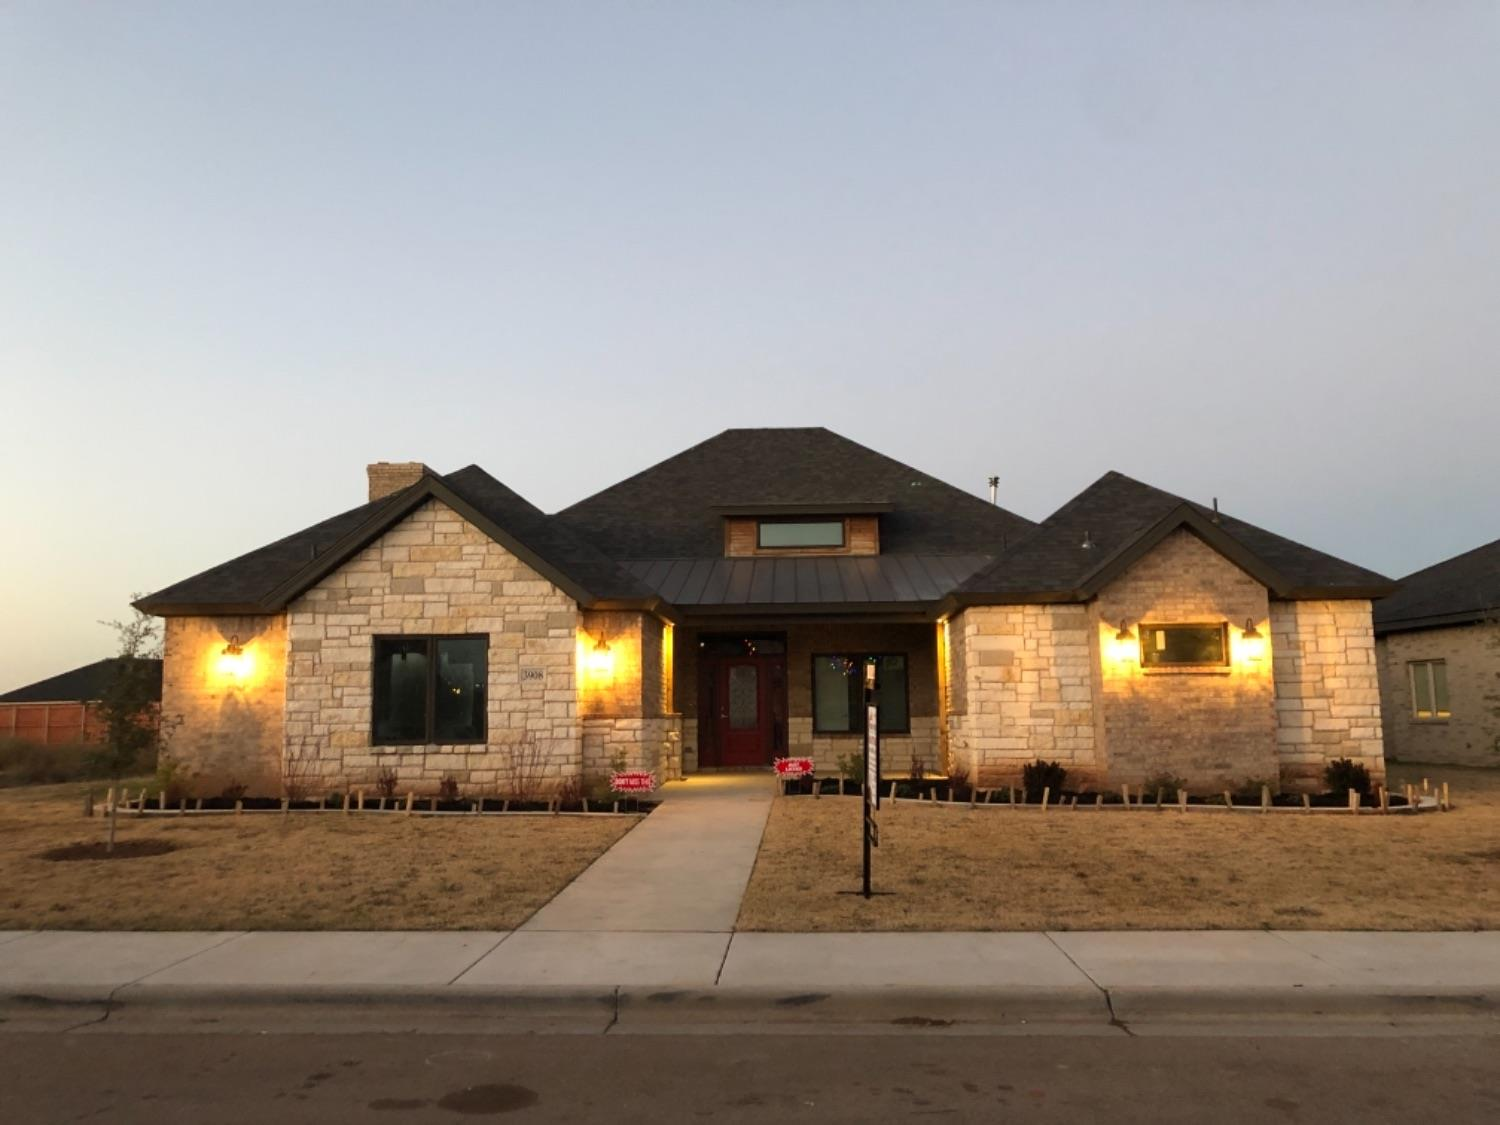 Come see the beautiful design by Lubbock Creative Luxury Homes that blends modern luxury with a bit of country comfort. With one of a kind special ceilings, recess lighting, granite countertops, a welcoming outdoor patio perfect for entertainment and luxury style bathrooms, you'll be sure to feel right at home.